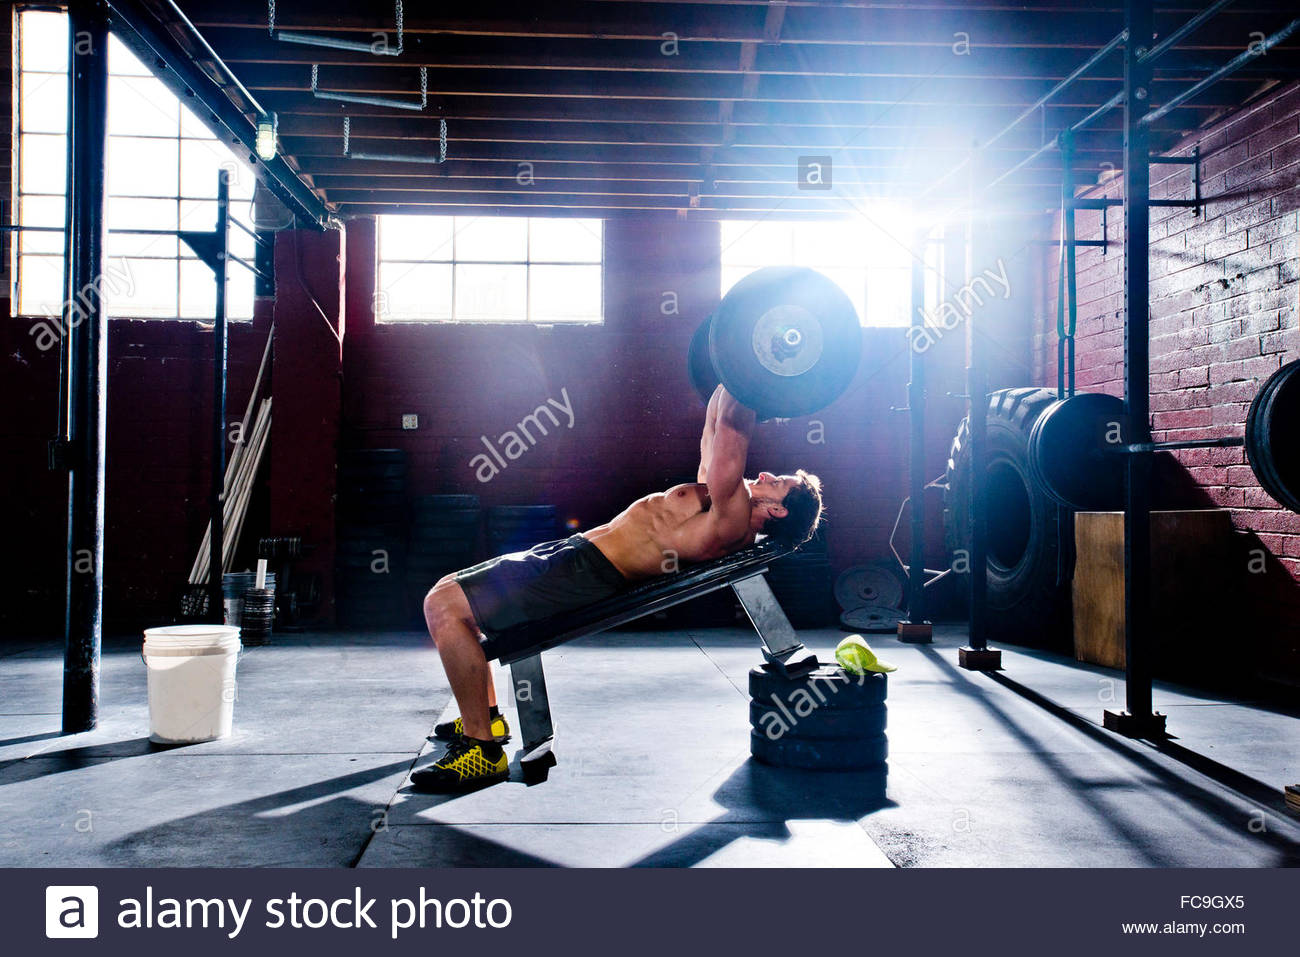 A crossfit athlete does tricep exercises. - Stock Image